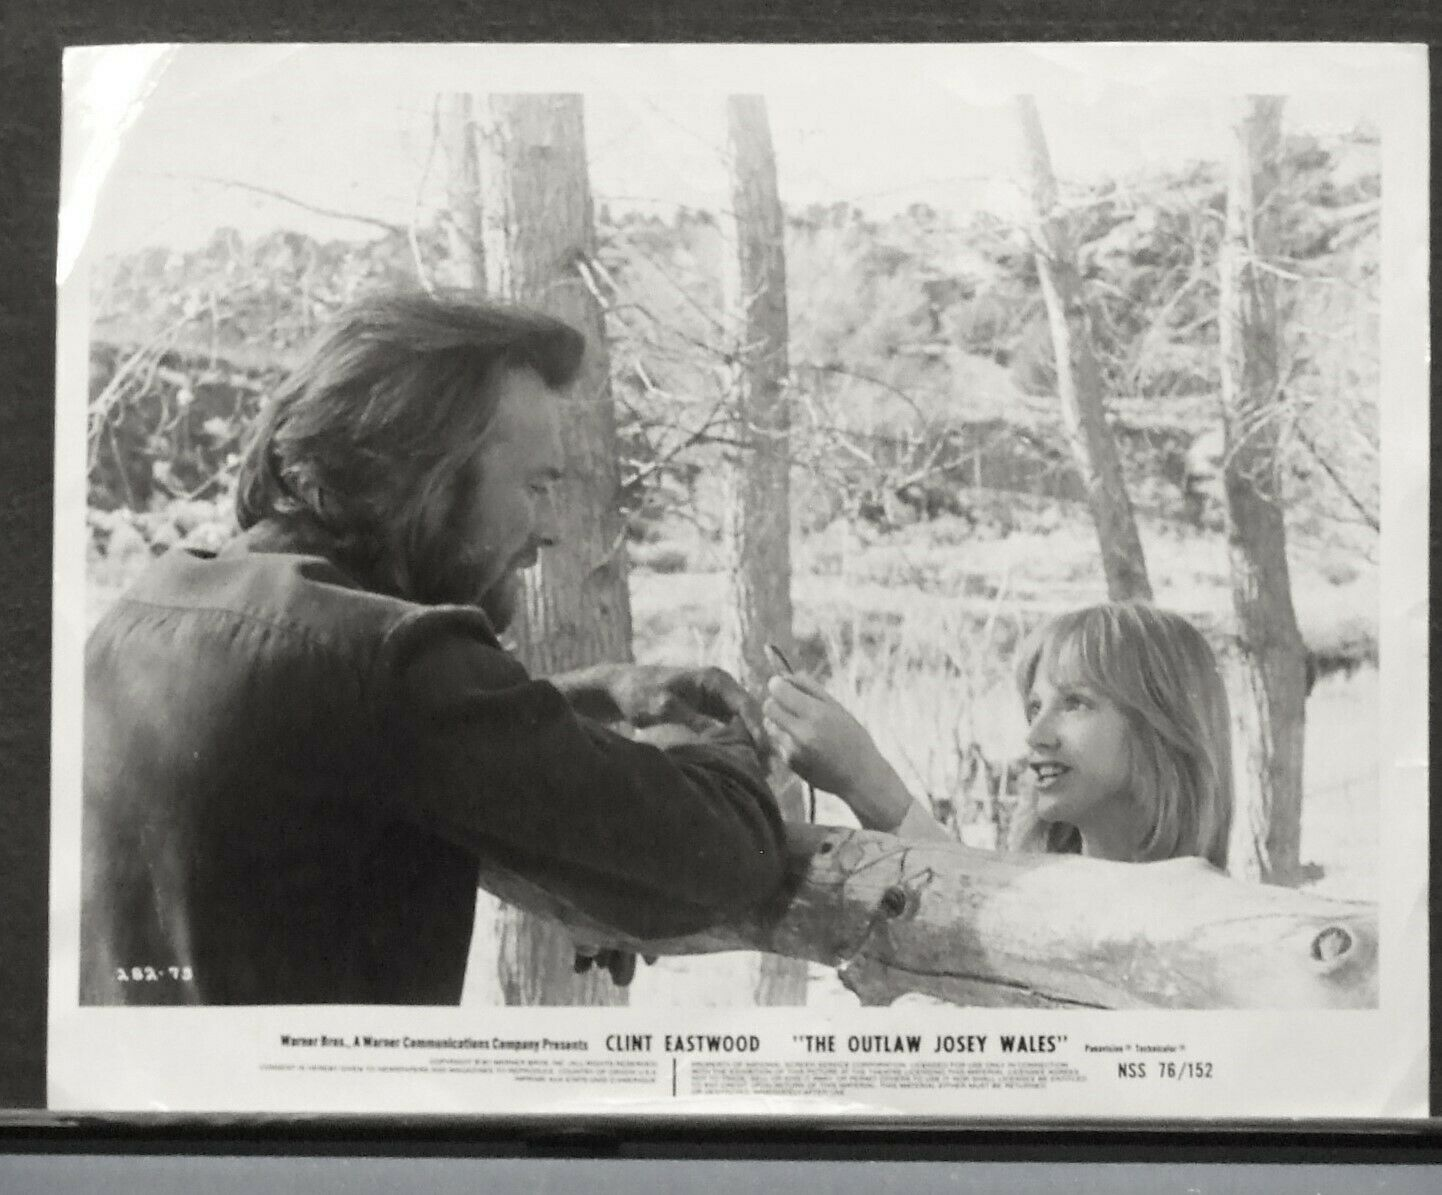 Clint Eastwood In THE OUTLAW JOSEY WALES 1976 Movie Still - $5.95